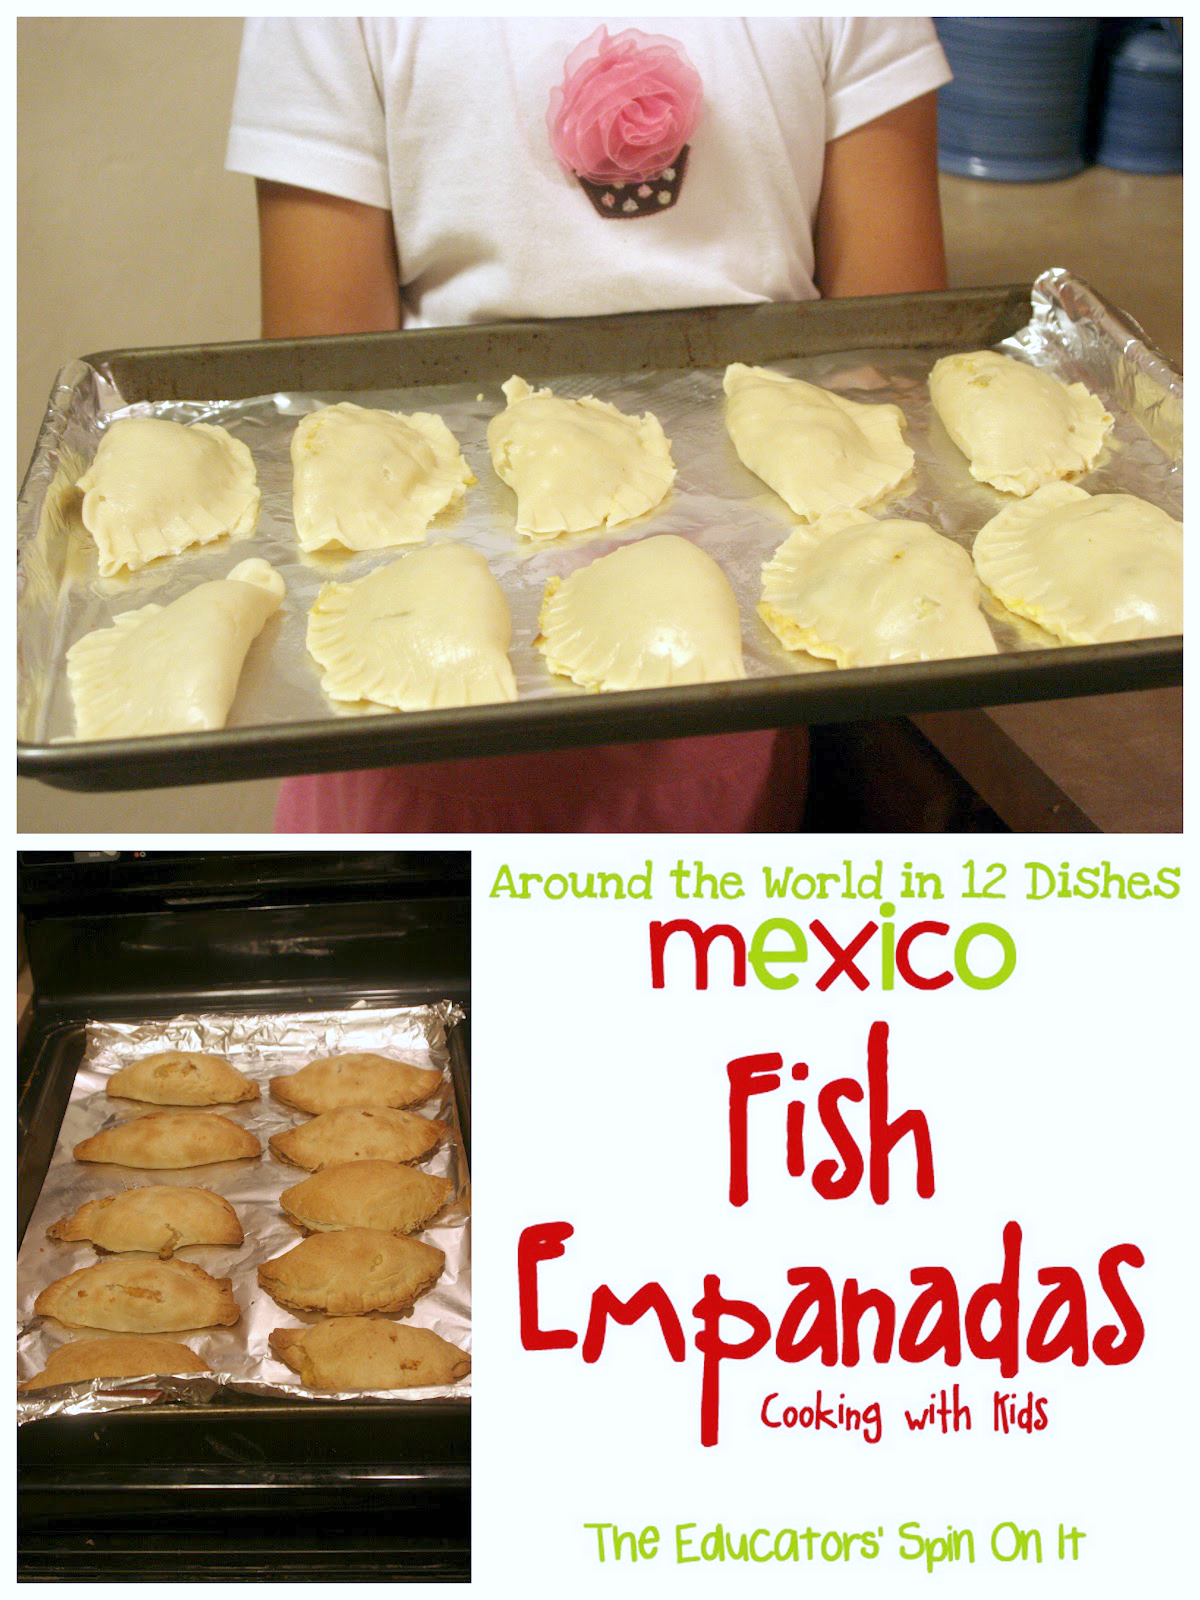 Making Fish Empanadas with Kids